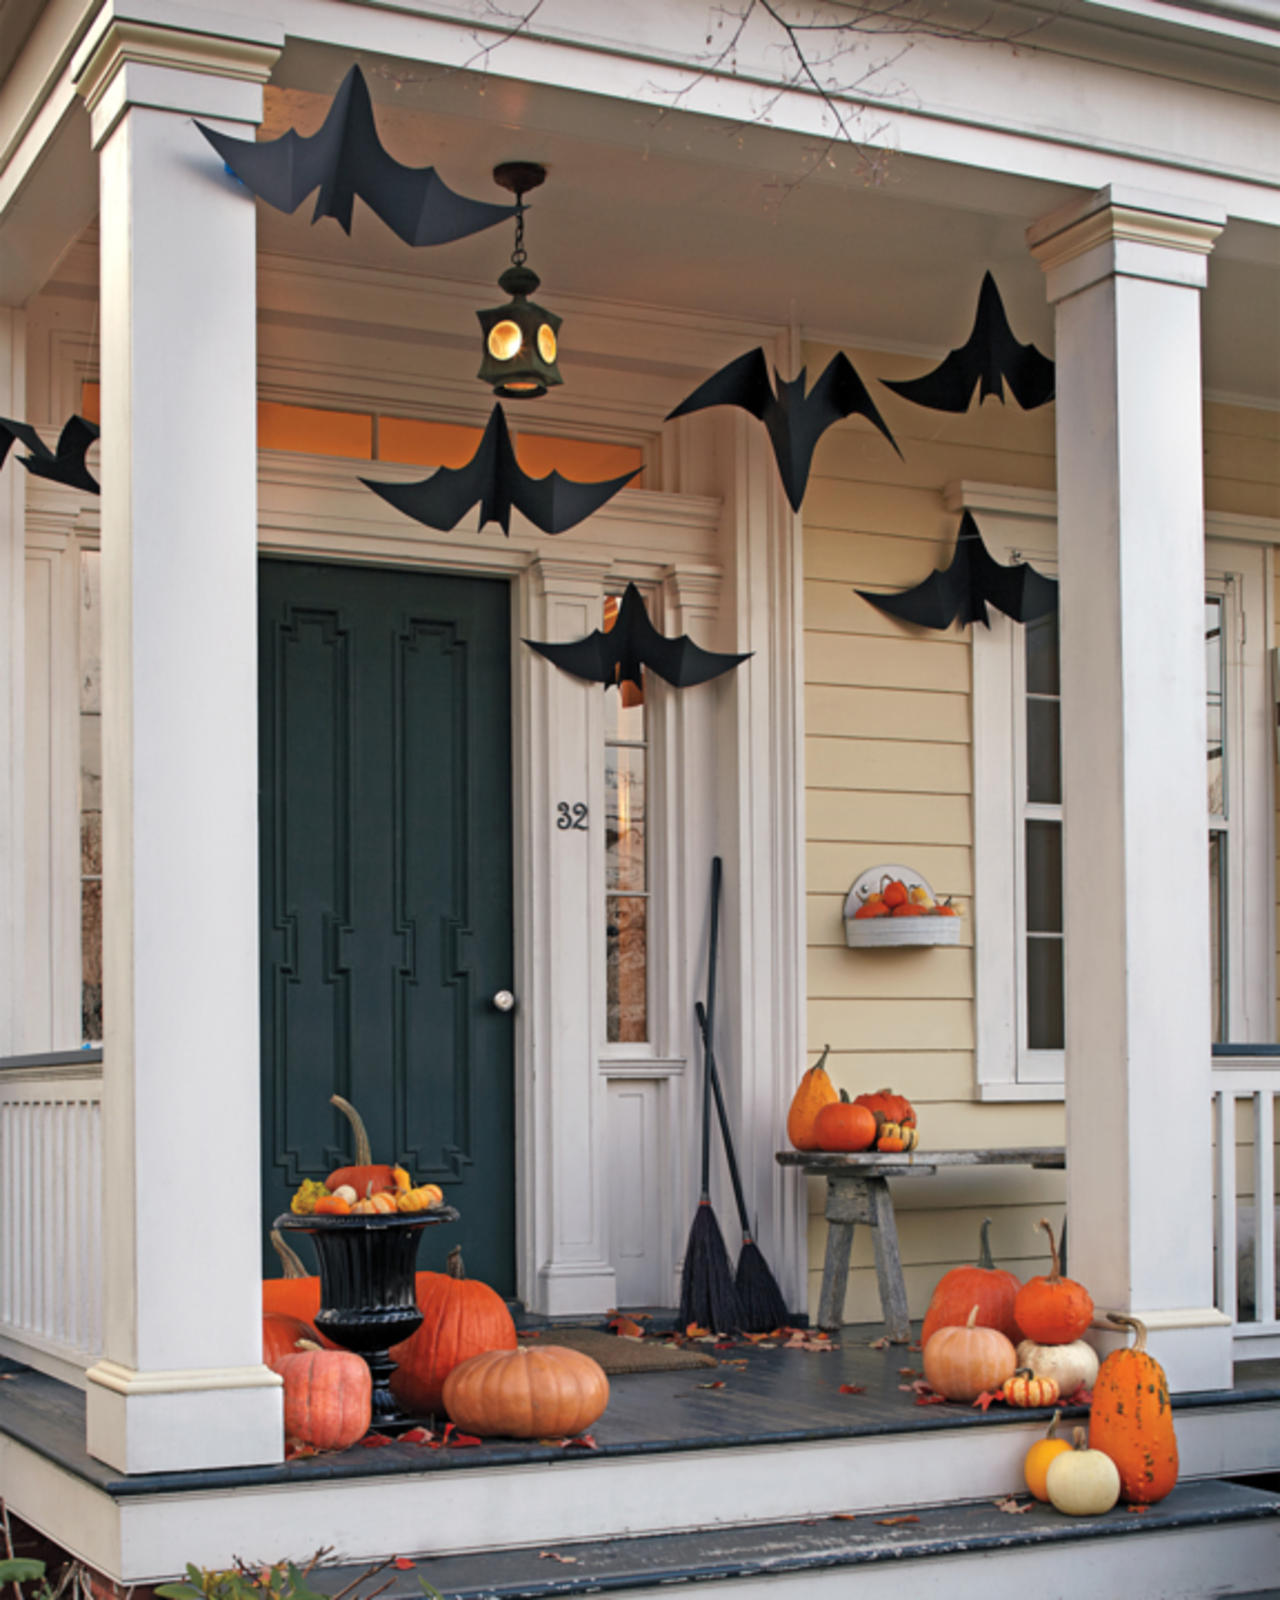 When Should You Start Decorating for Halloween?